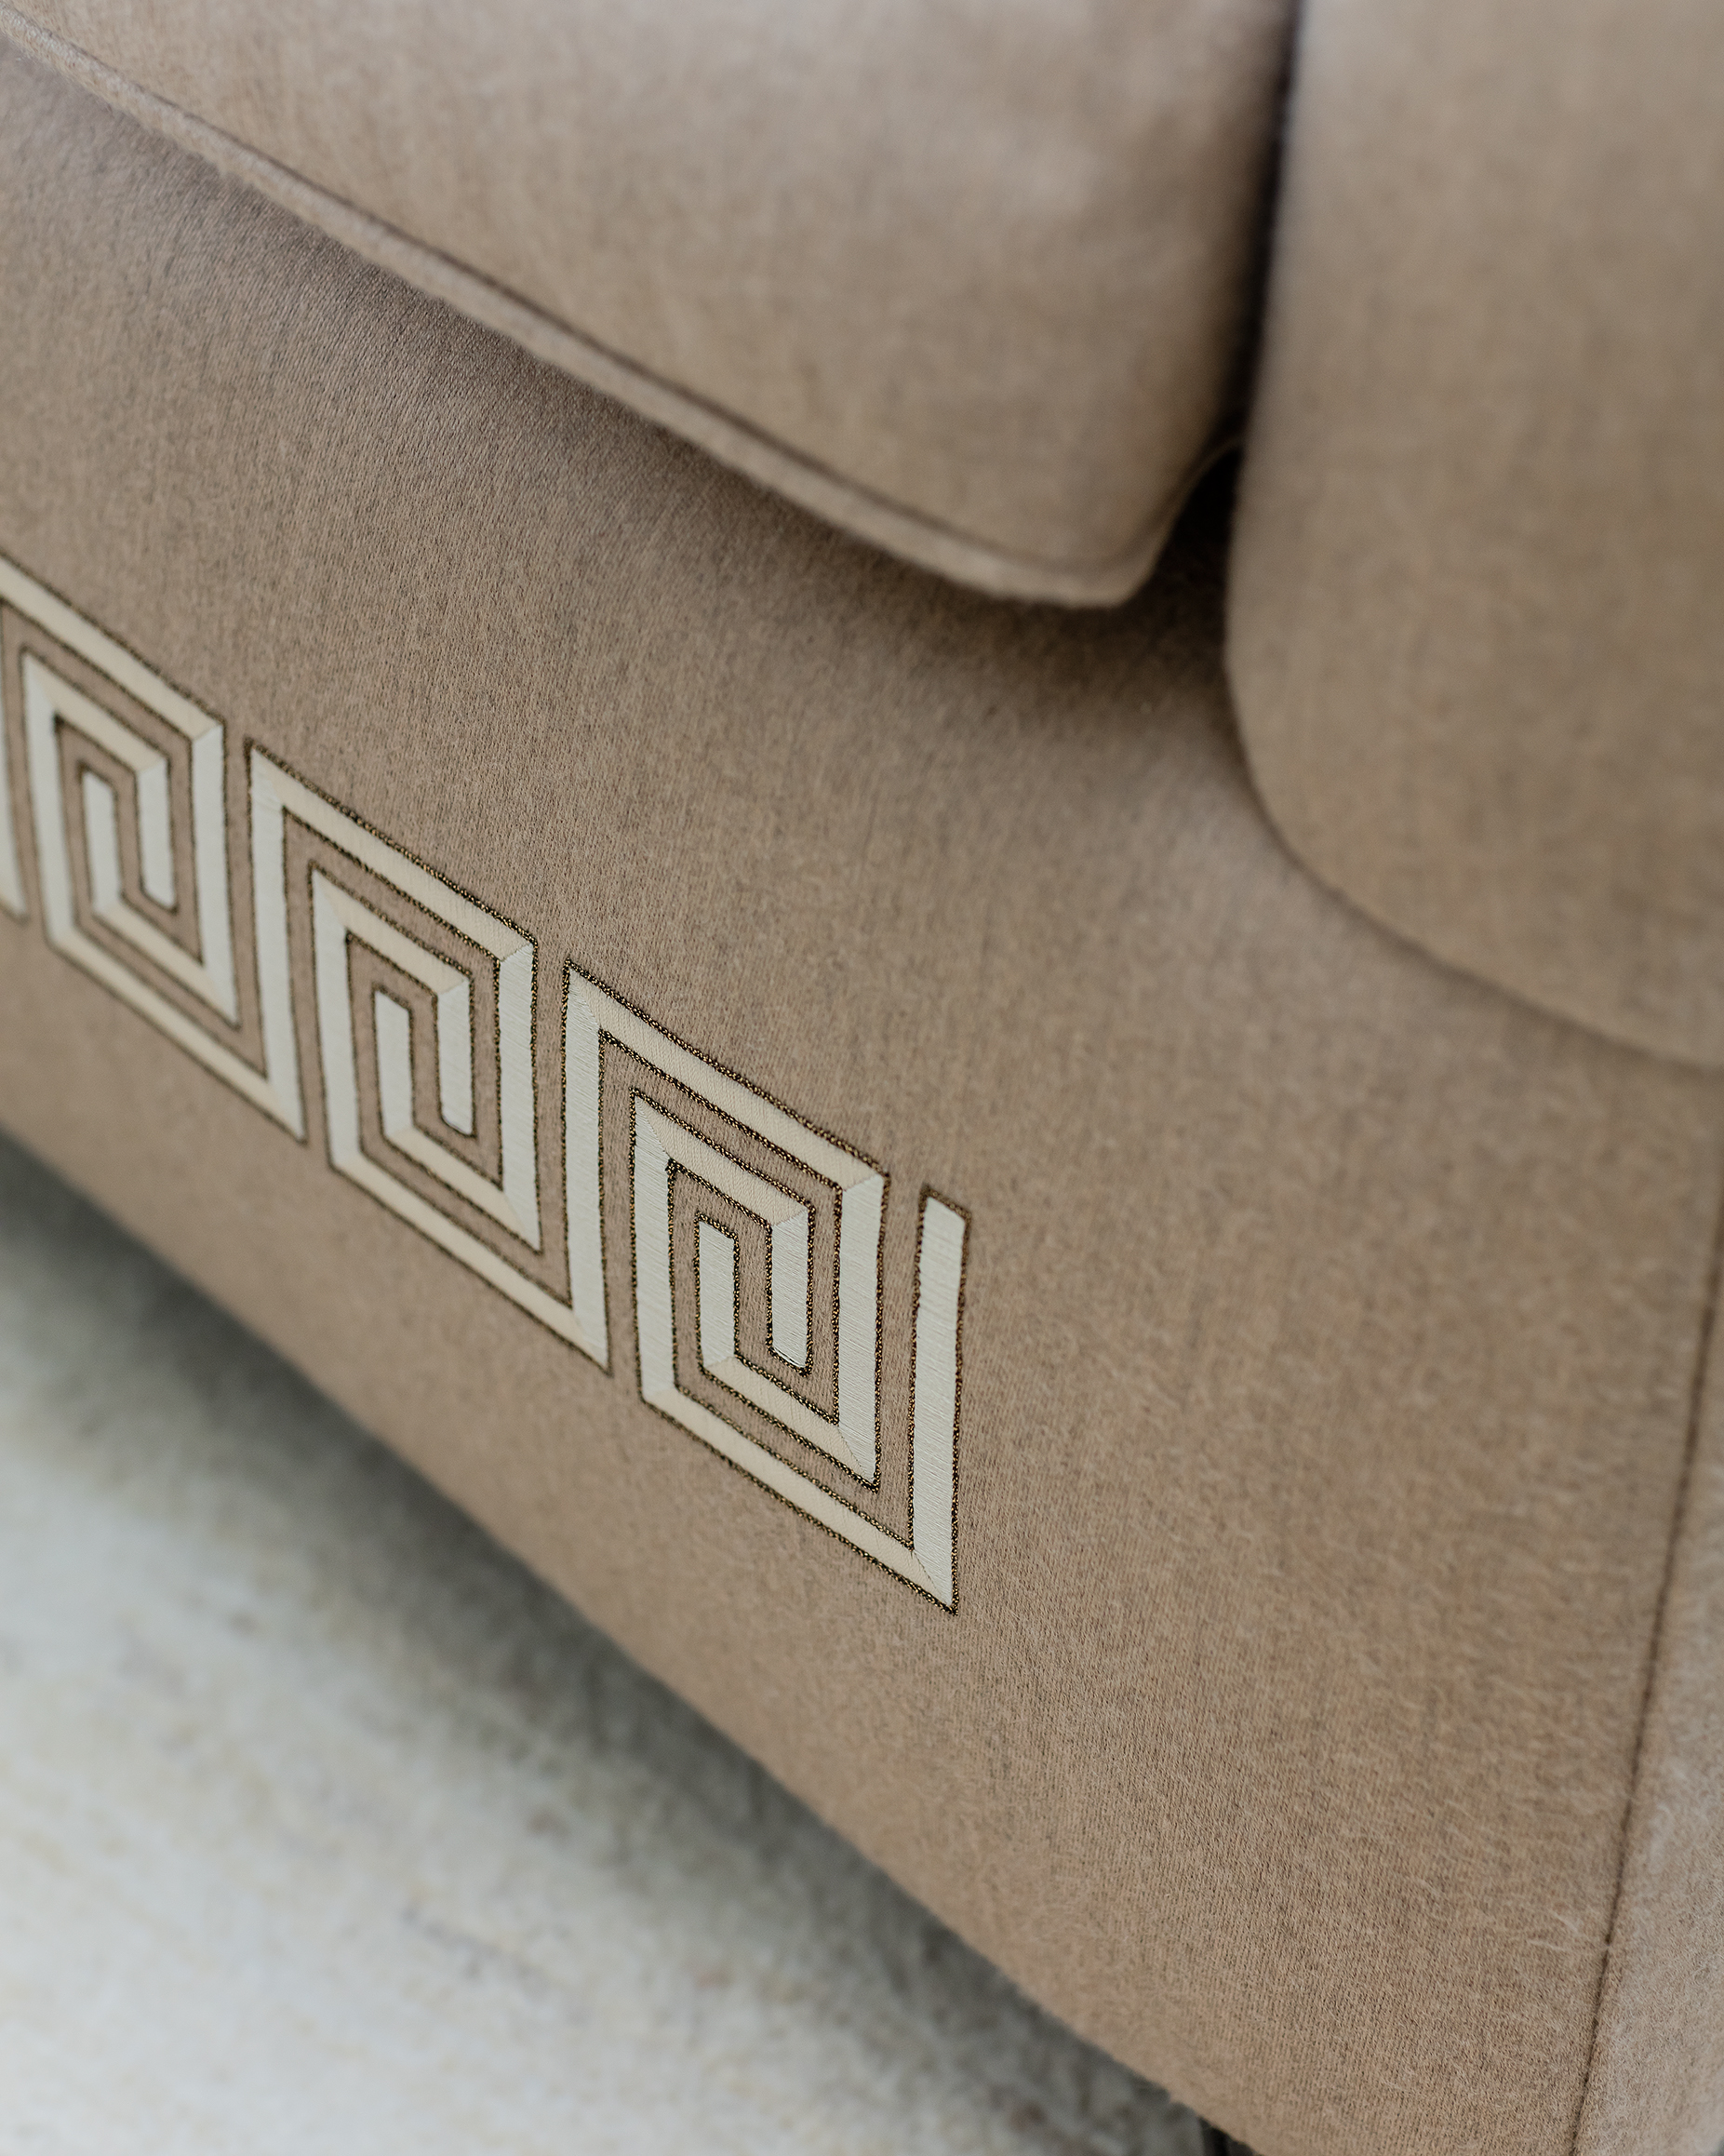 MS embroidery detail.jpg